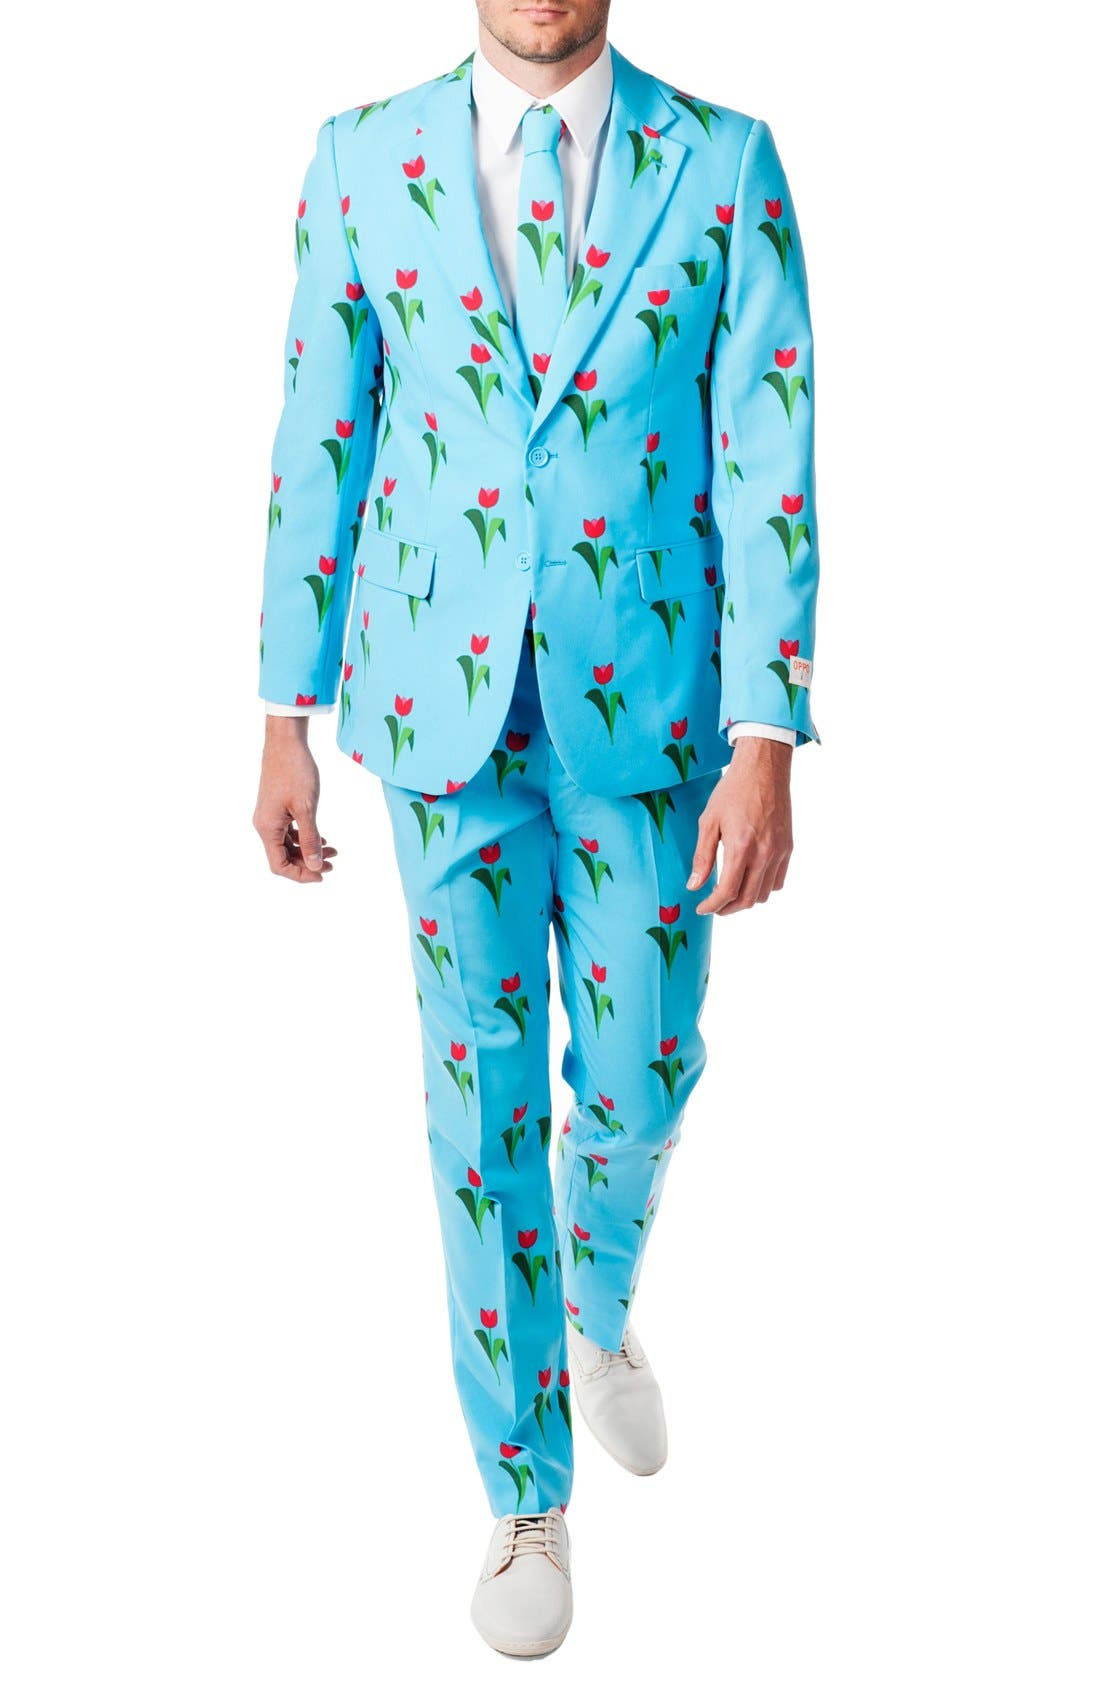 Main Image - OppoSuits 'Tulips from Amsterdam' Trim Fit Two-Piece Suit with Tie